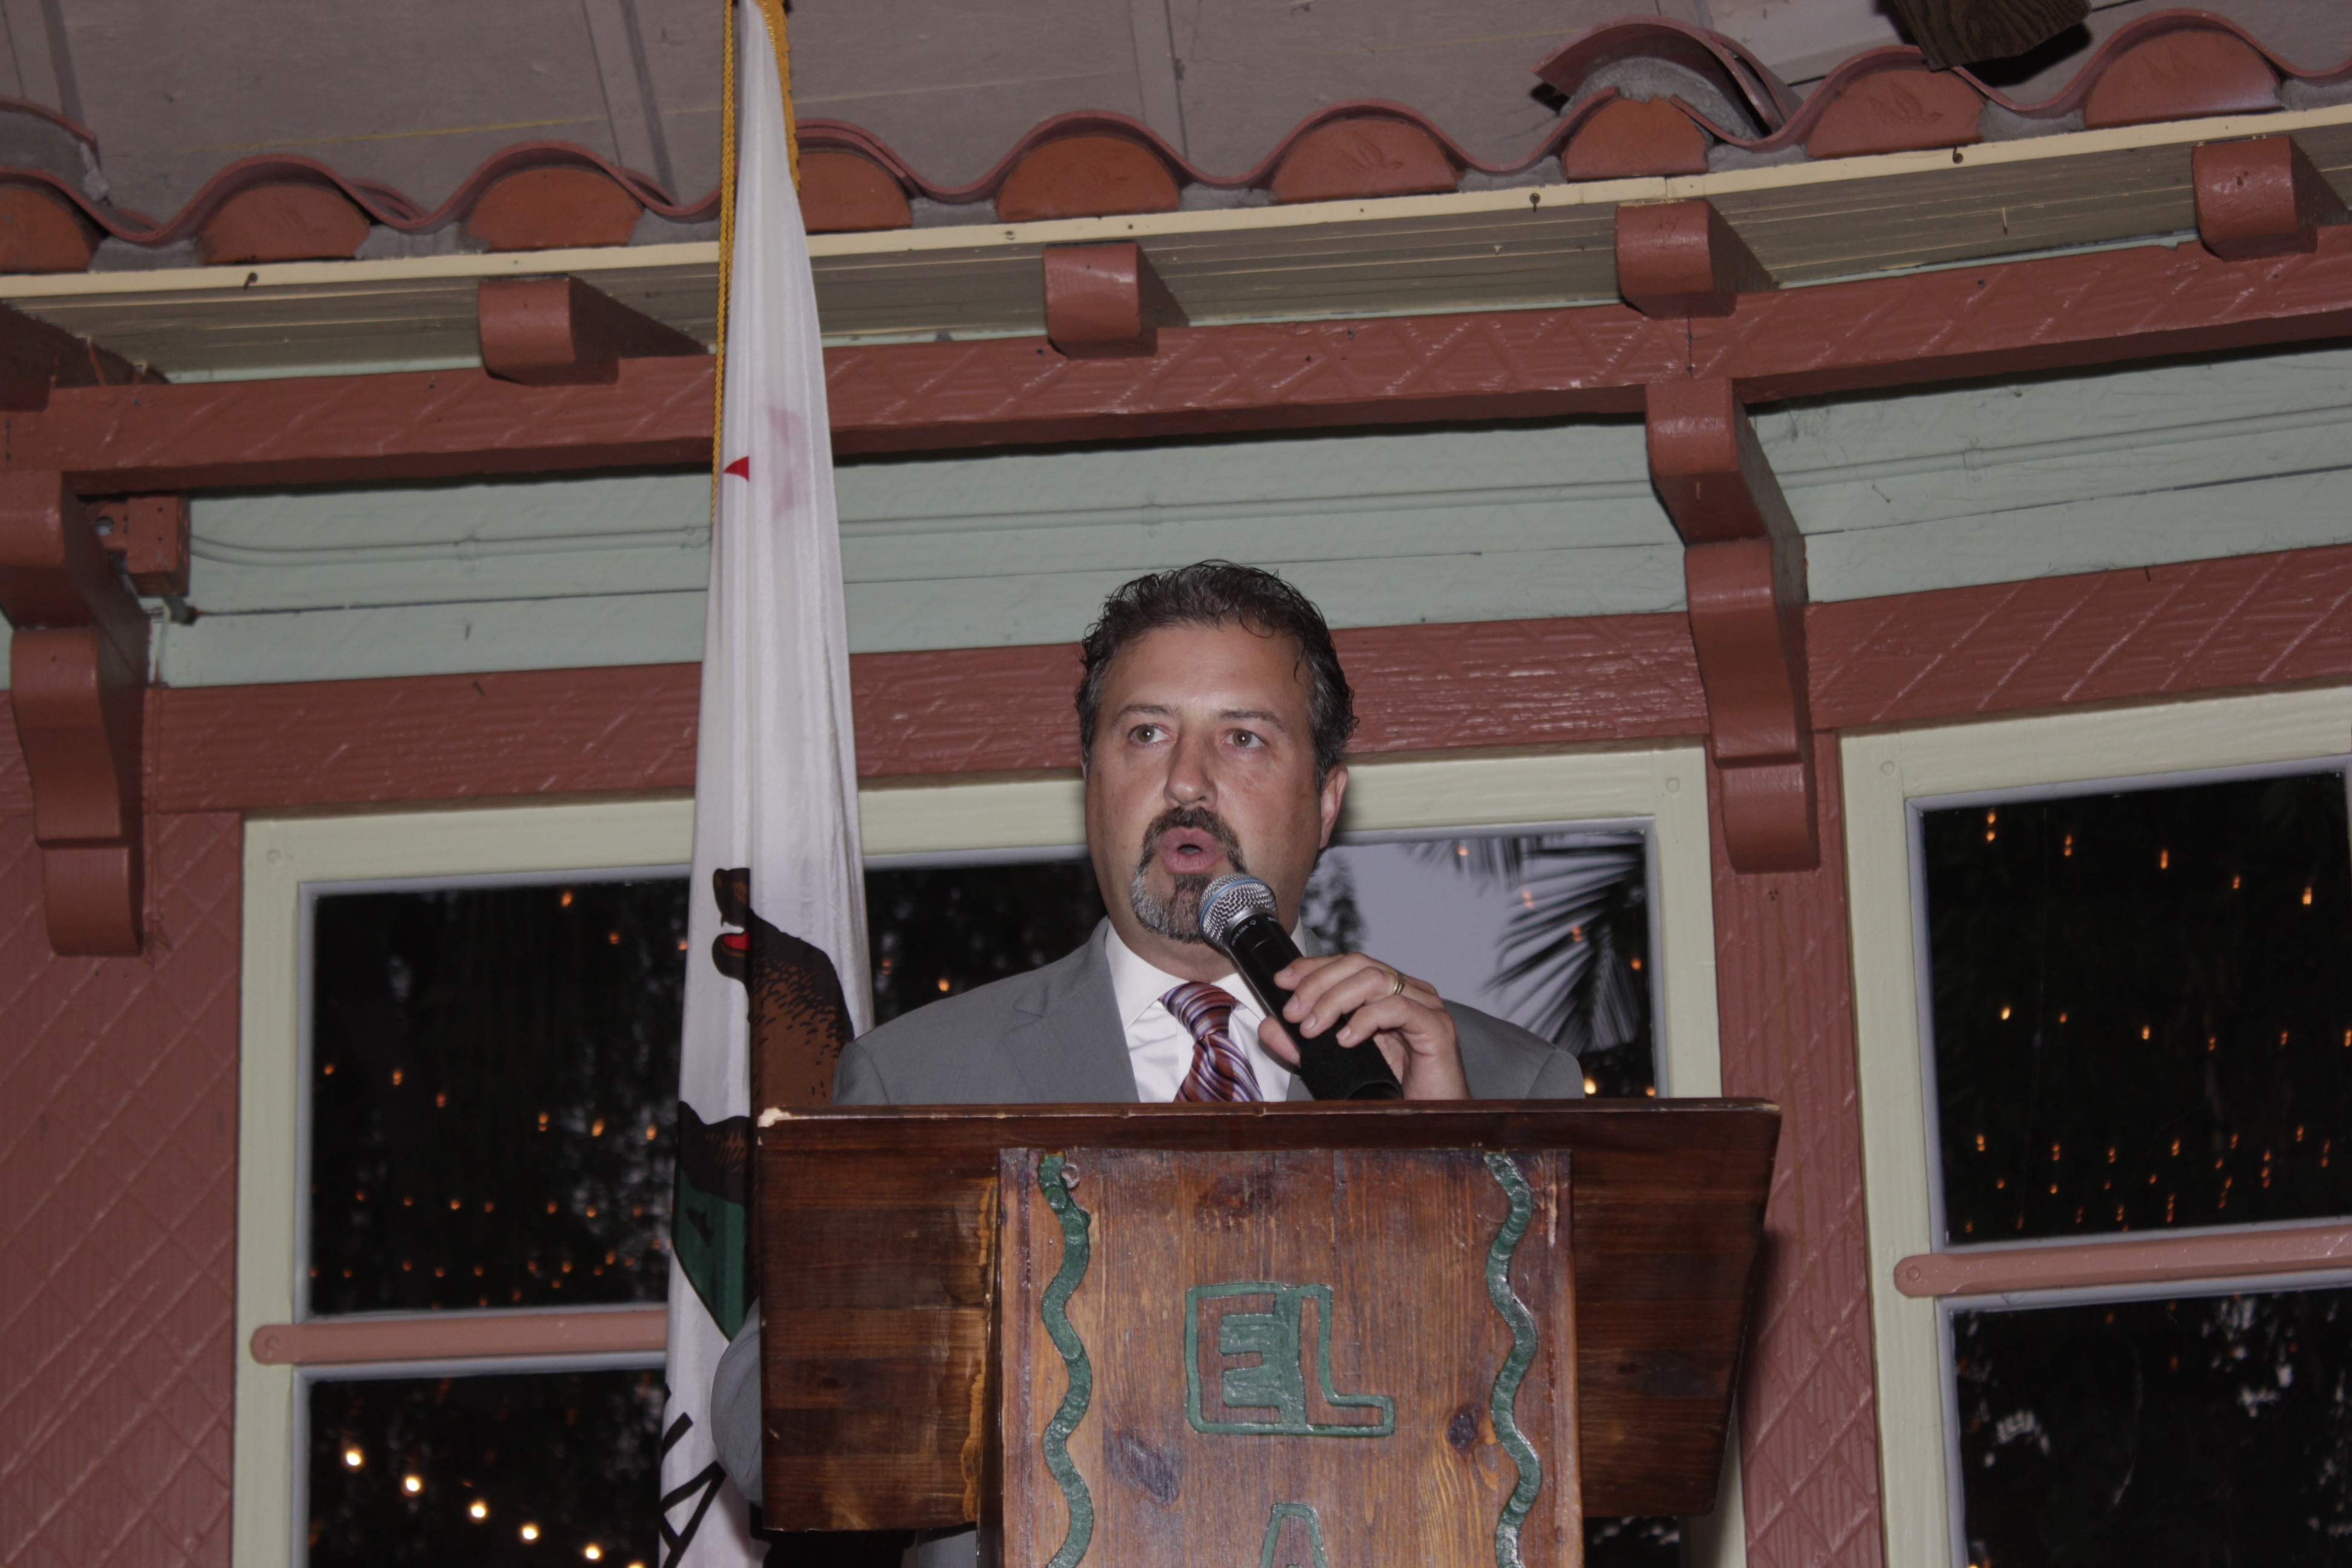 John Gillotti, owner of Mission Grill, delivers a speech after receiving the Chamber of Commerce's 2014 Business of the Year award. Photo: Brian Park